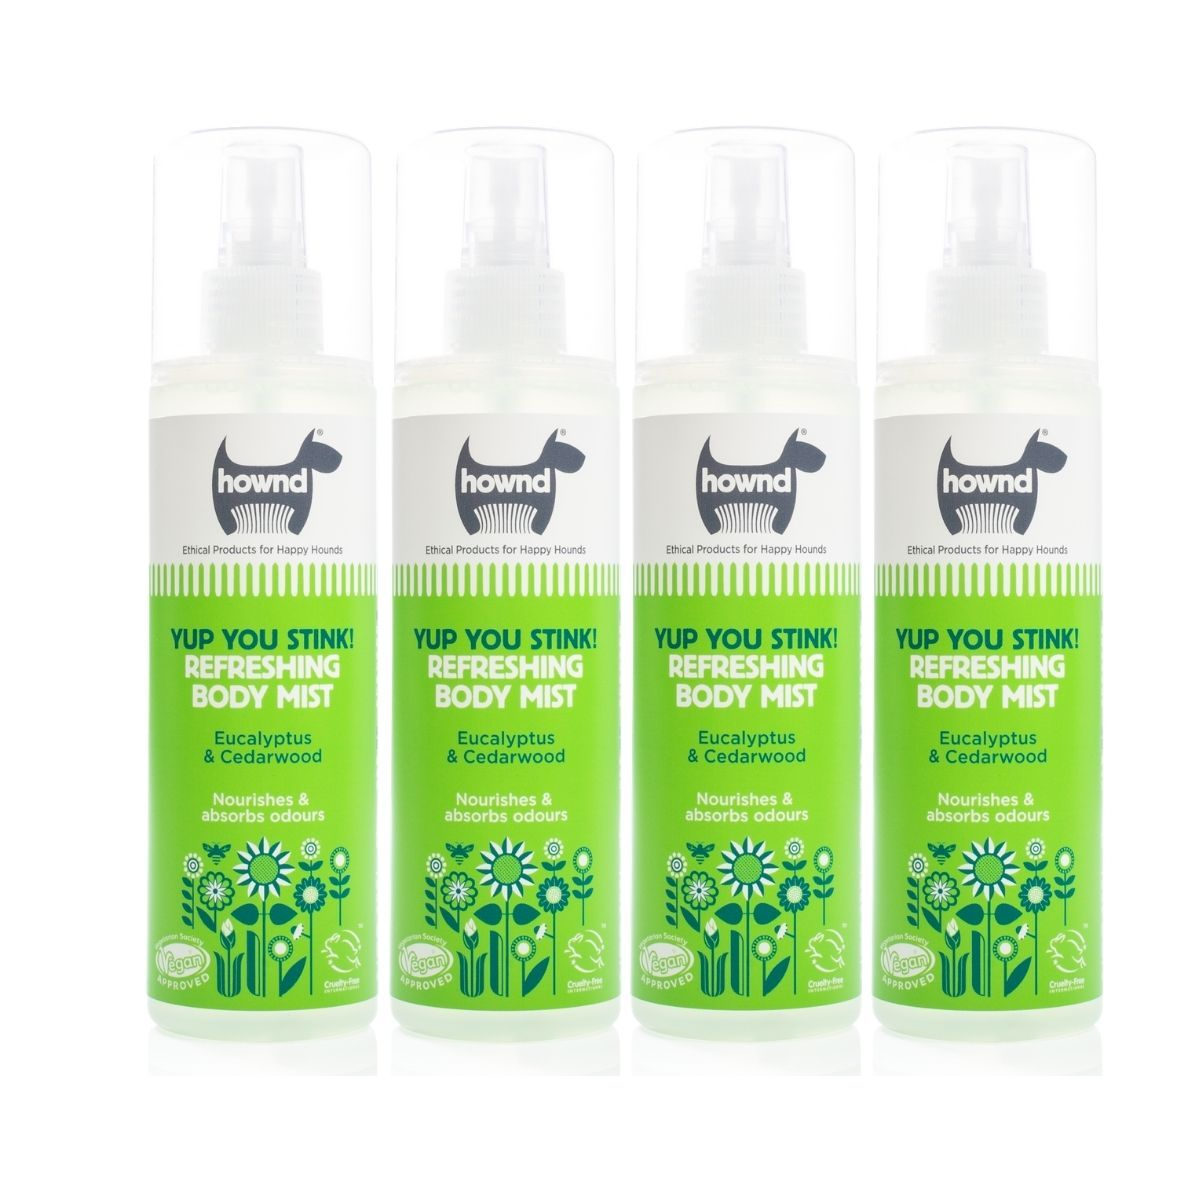 Yup You Stink! Refreshing Body Mist (250ml) x 4 - Hownd